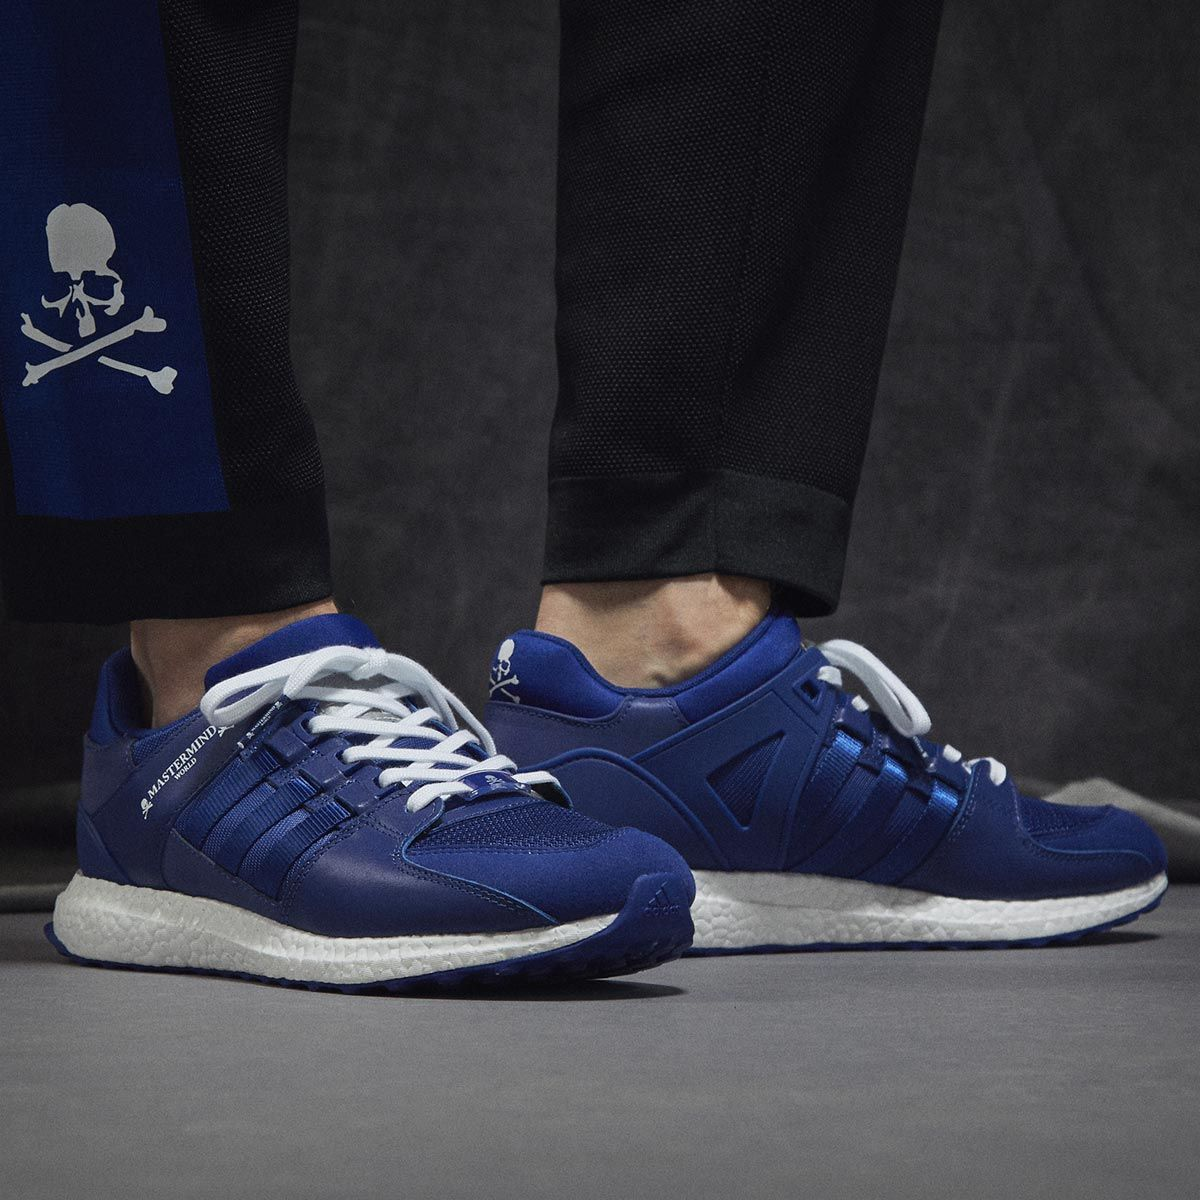 Adidas x Mastermind World EQT Support Ultra Mystery Ink